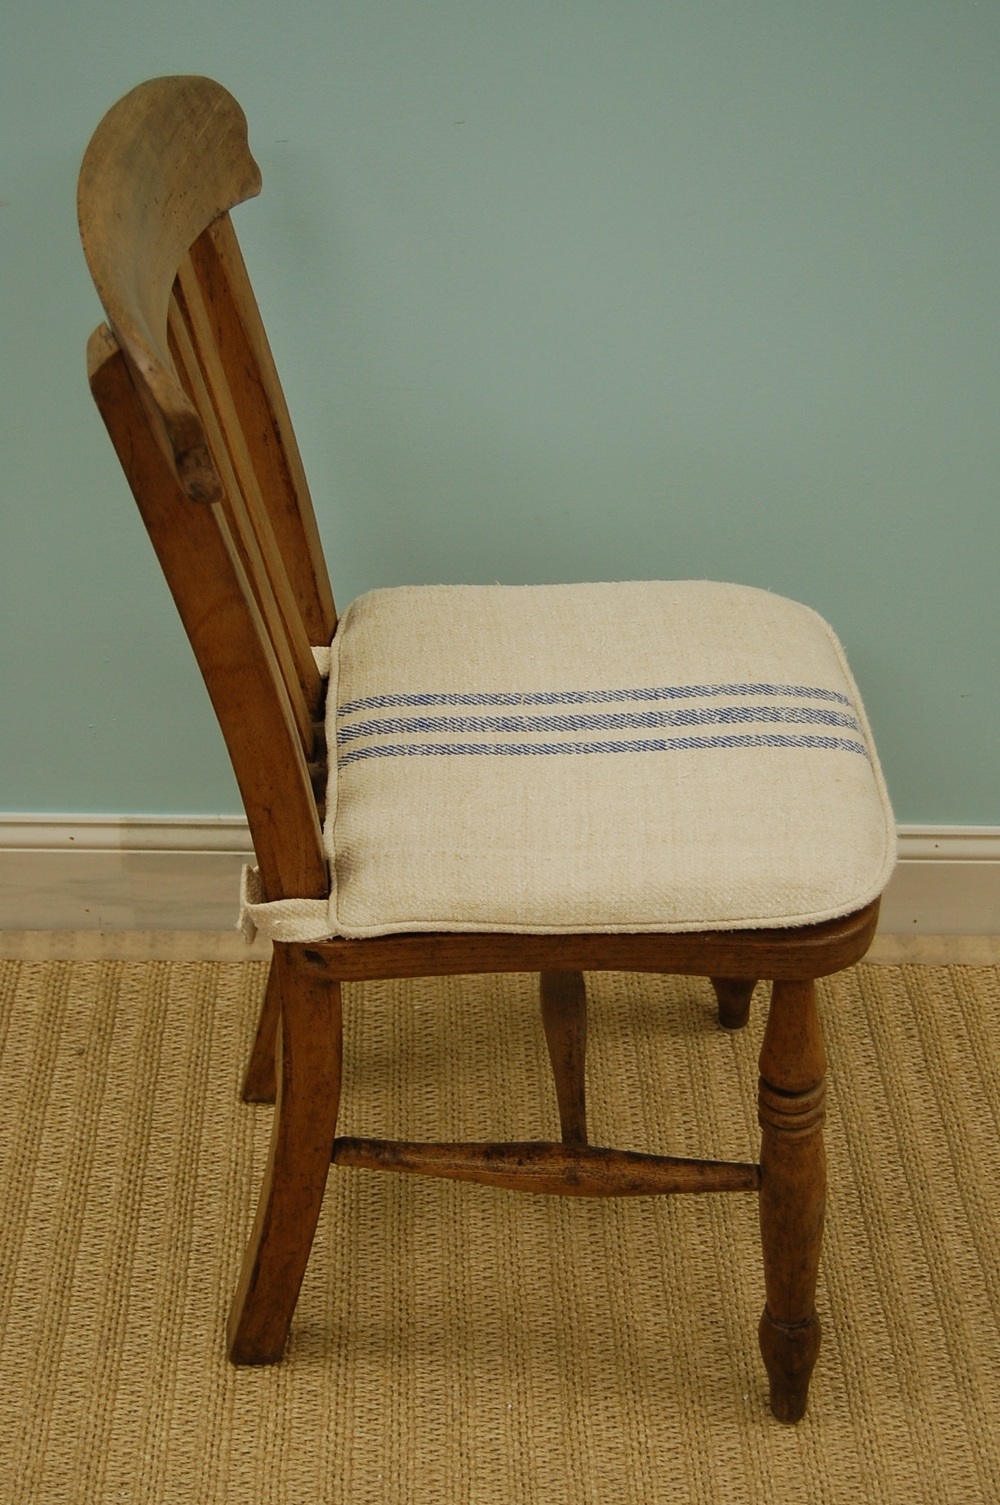 Vintage Chair w/ Seat Cushion